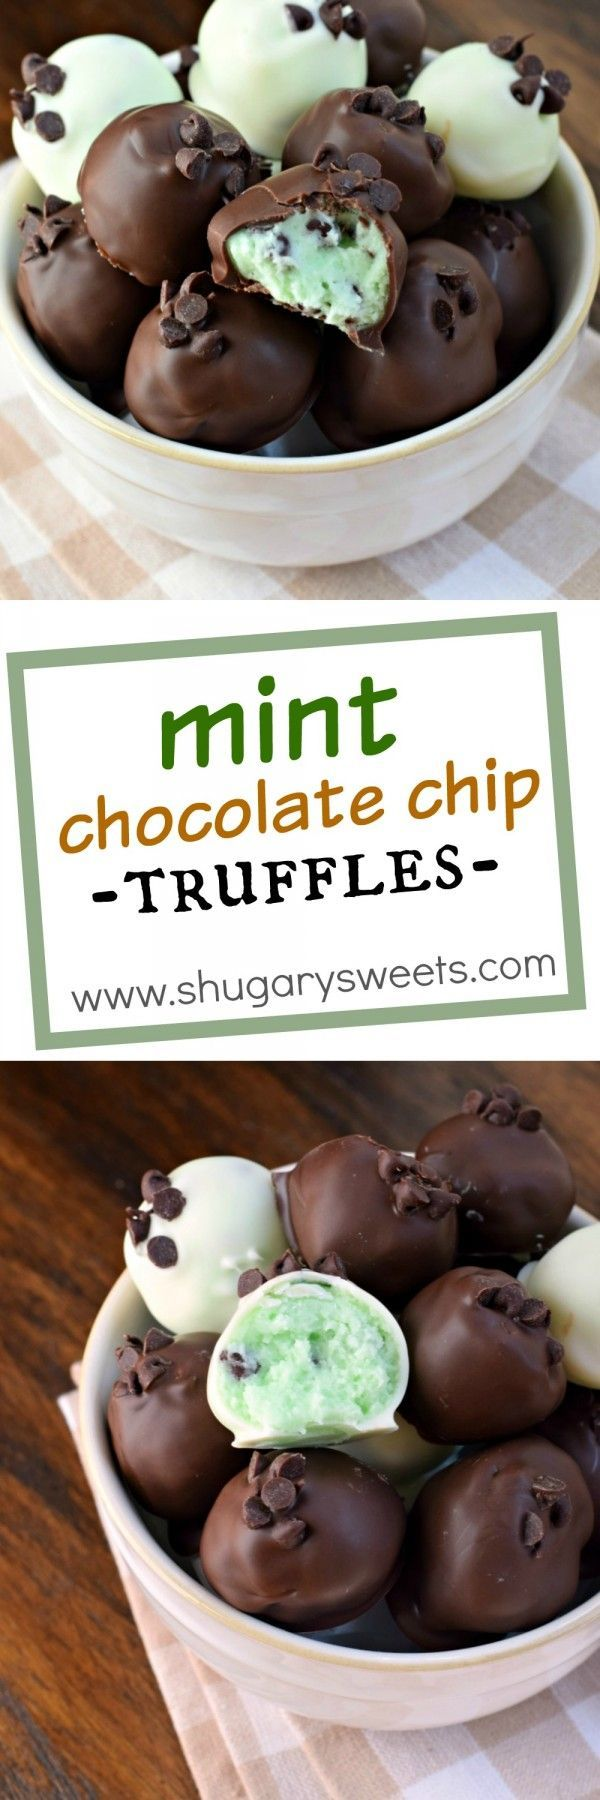 Mint Chocolate Chip Truffles